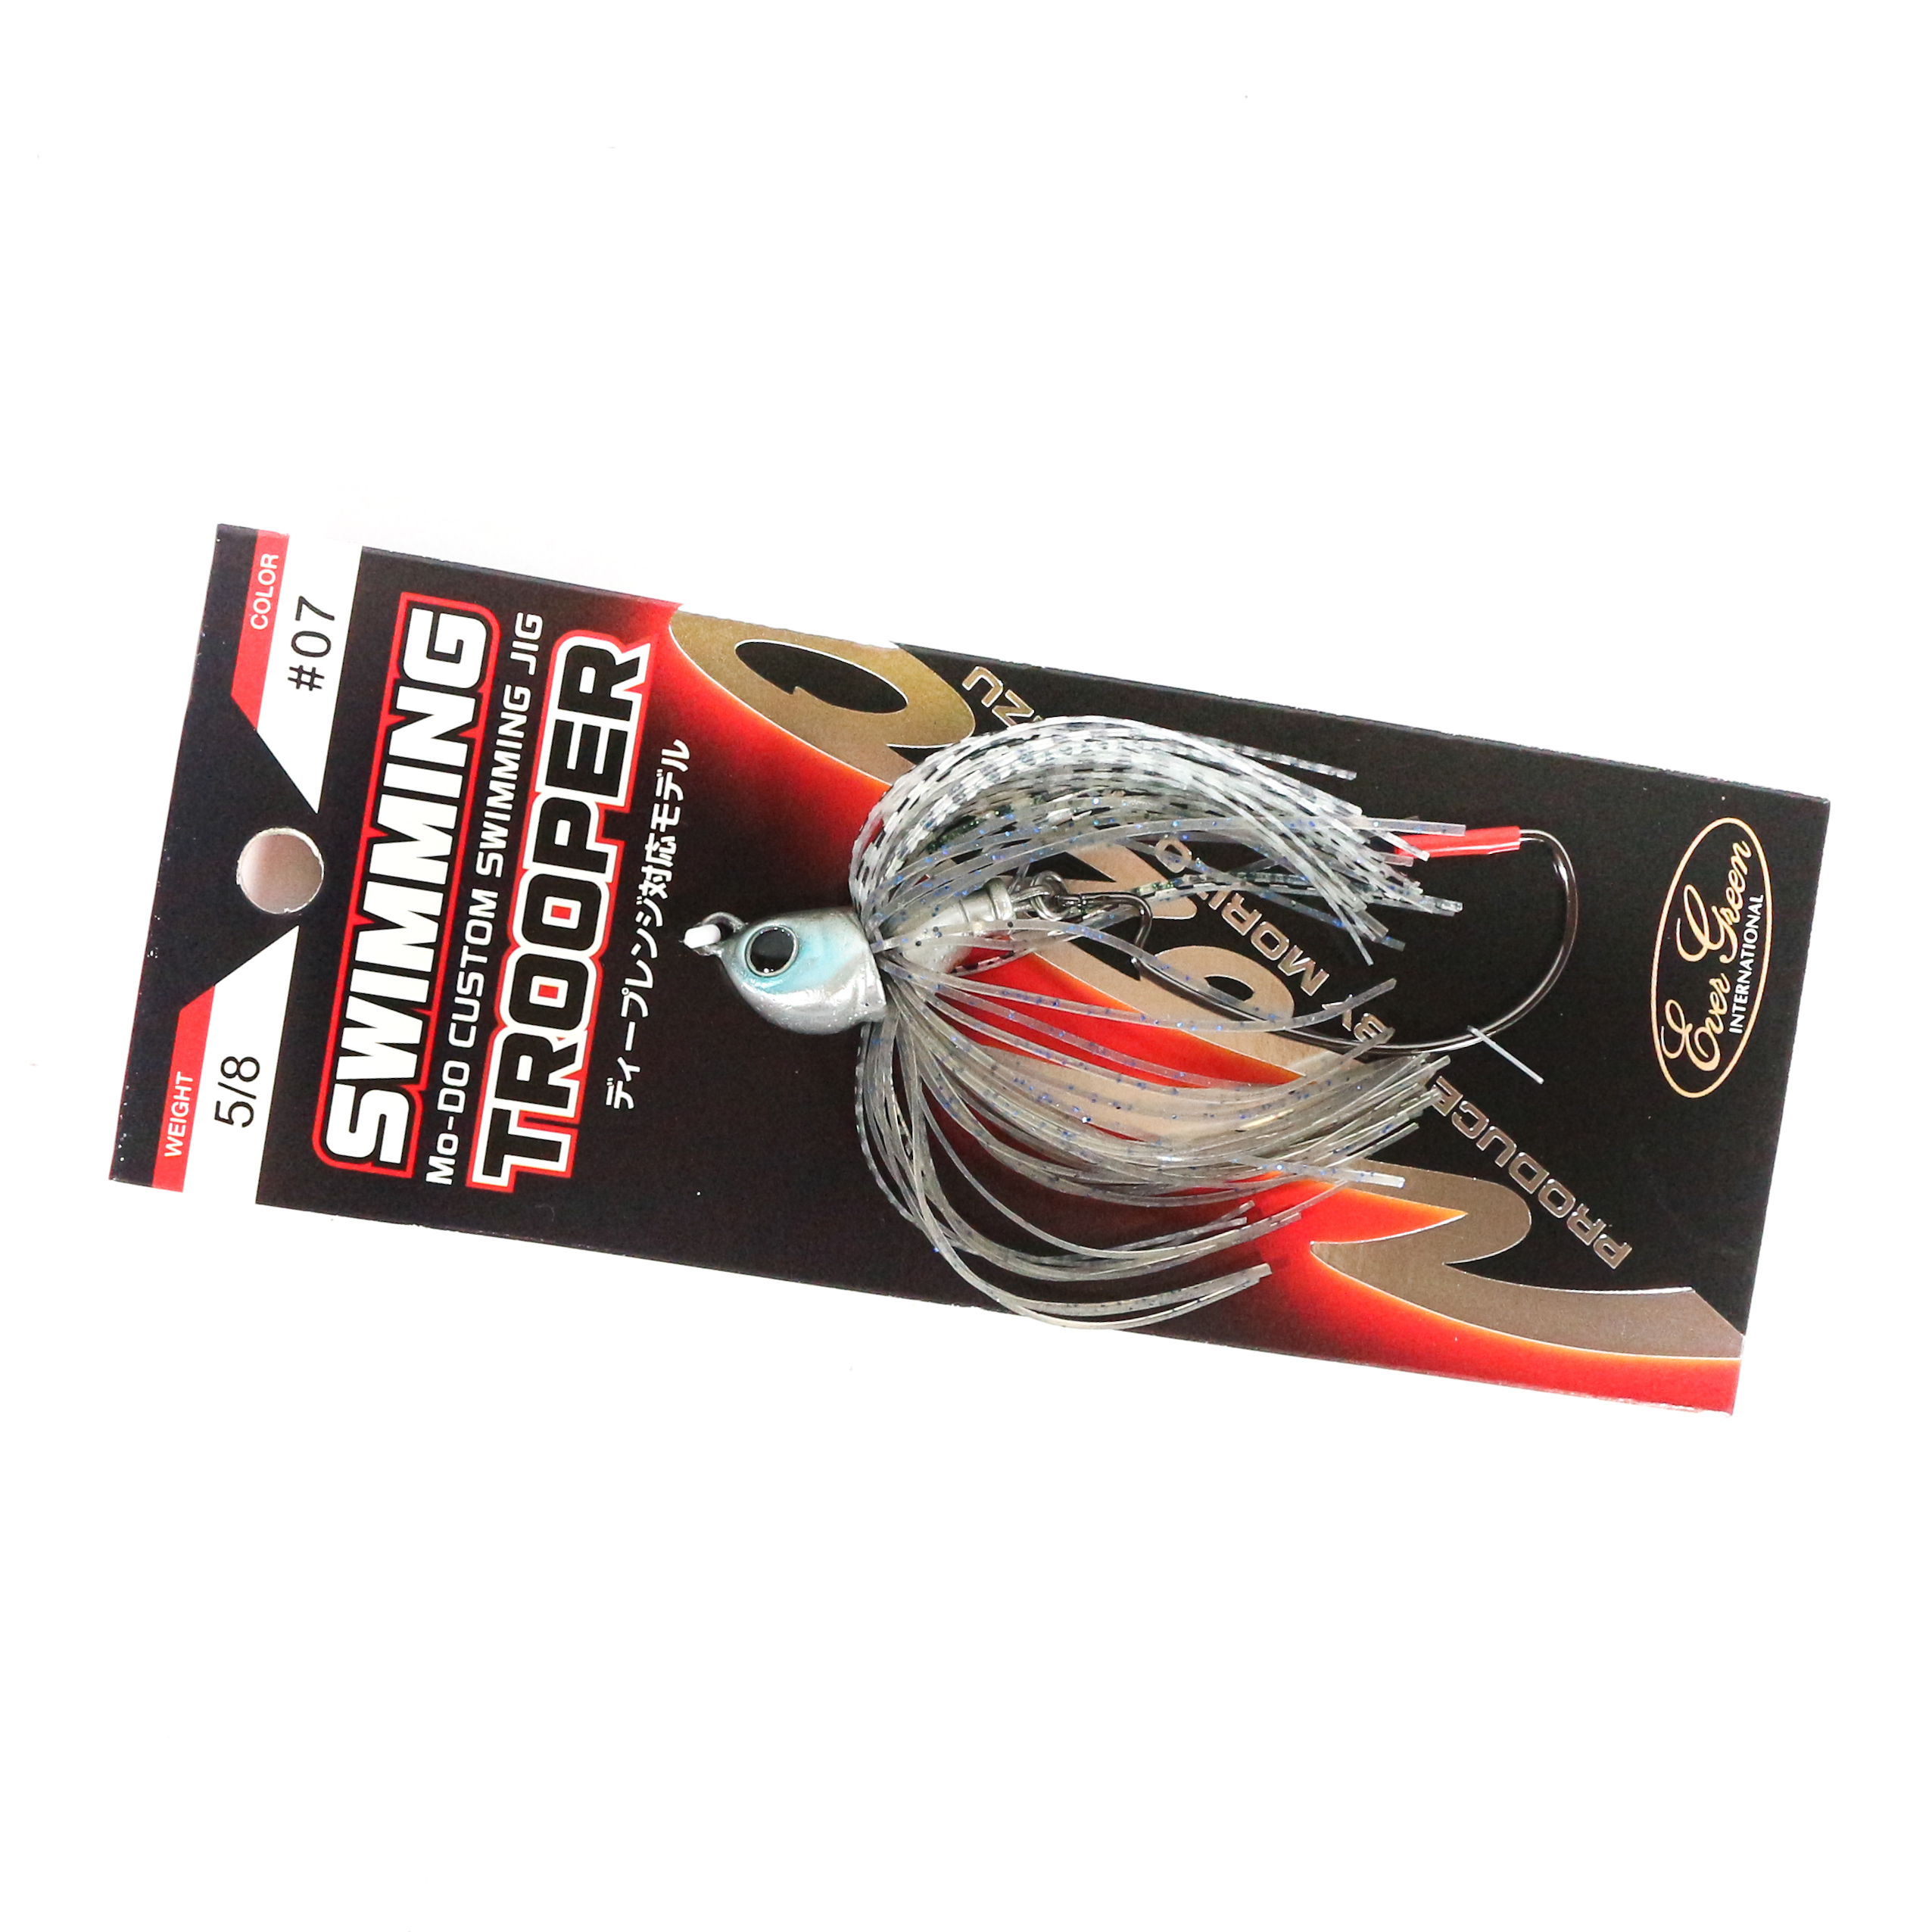 Evergreen Swimming Trooper Rubber Jig 5/8 oz Sinking Lure 07 (0263)